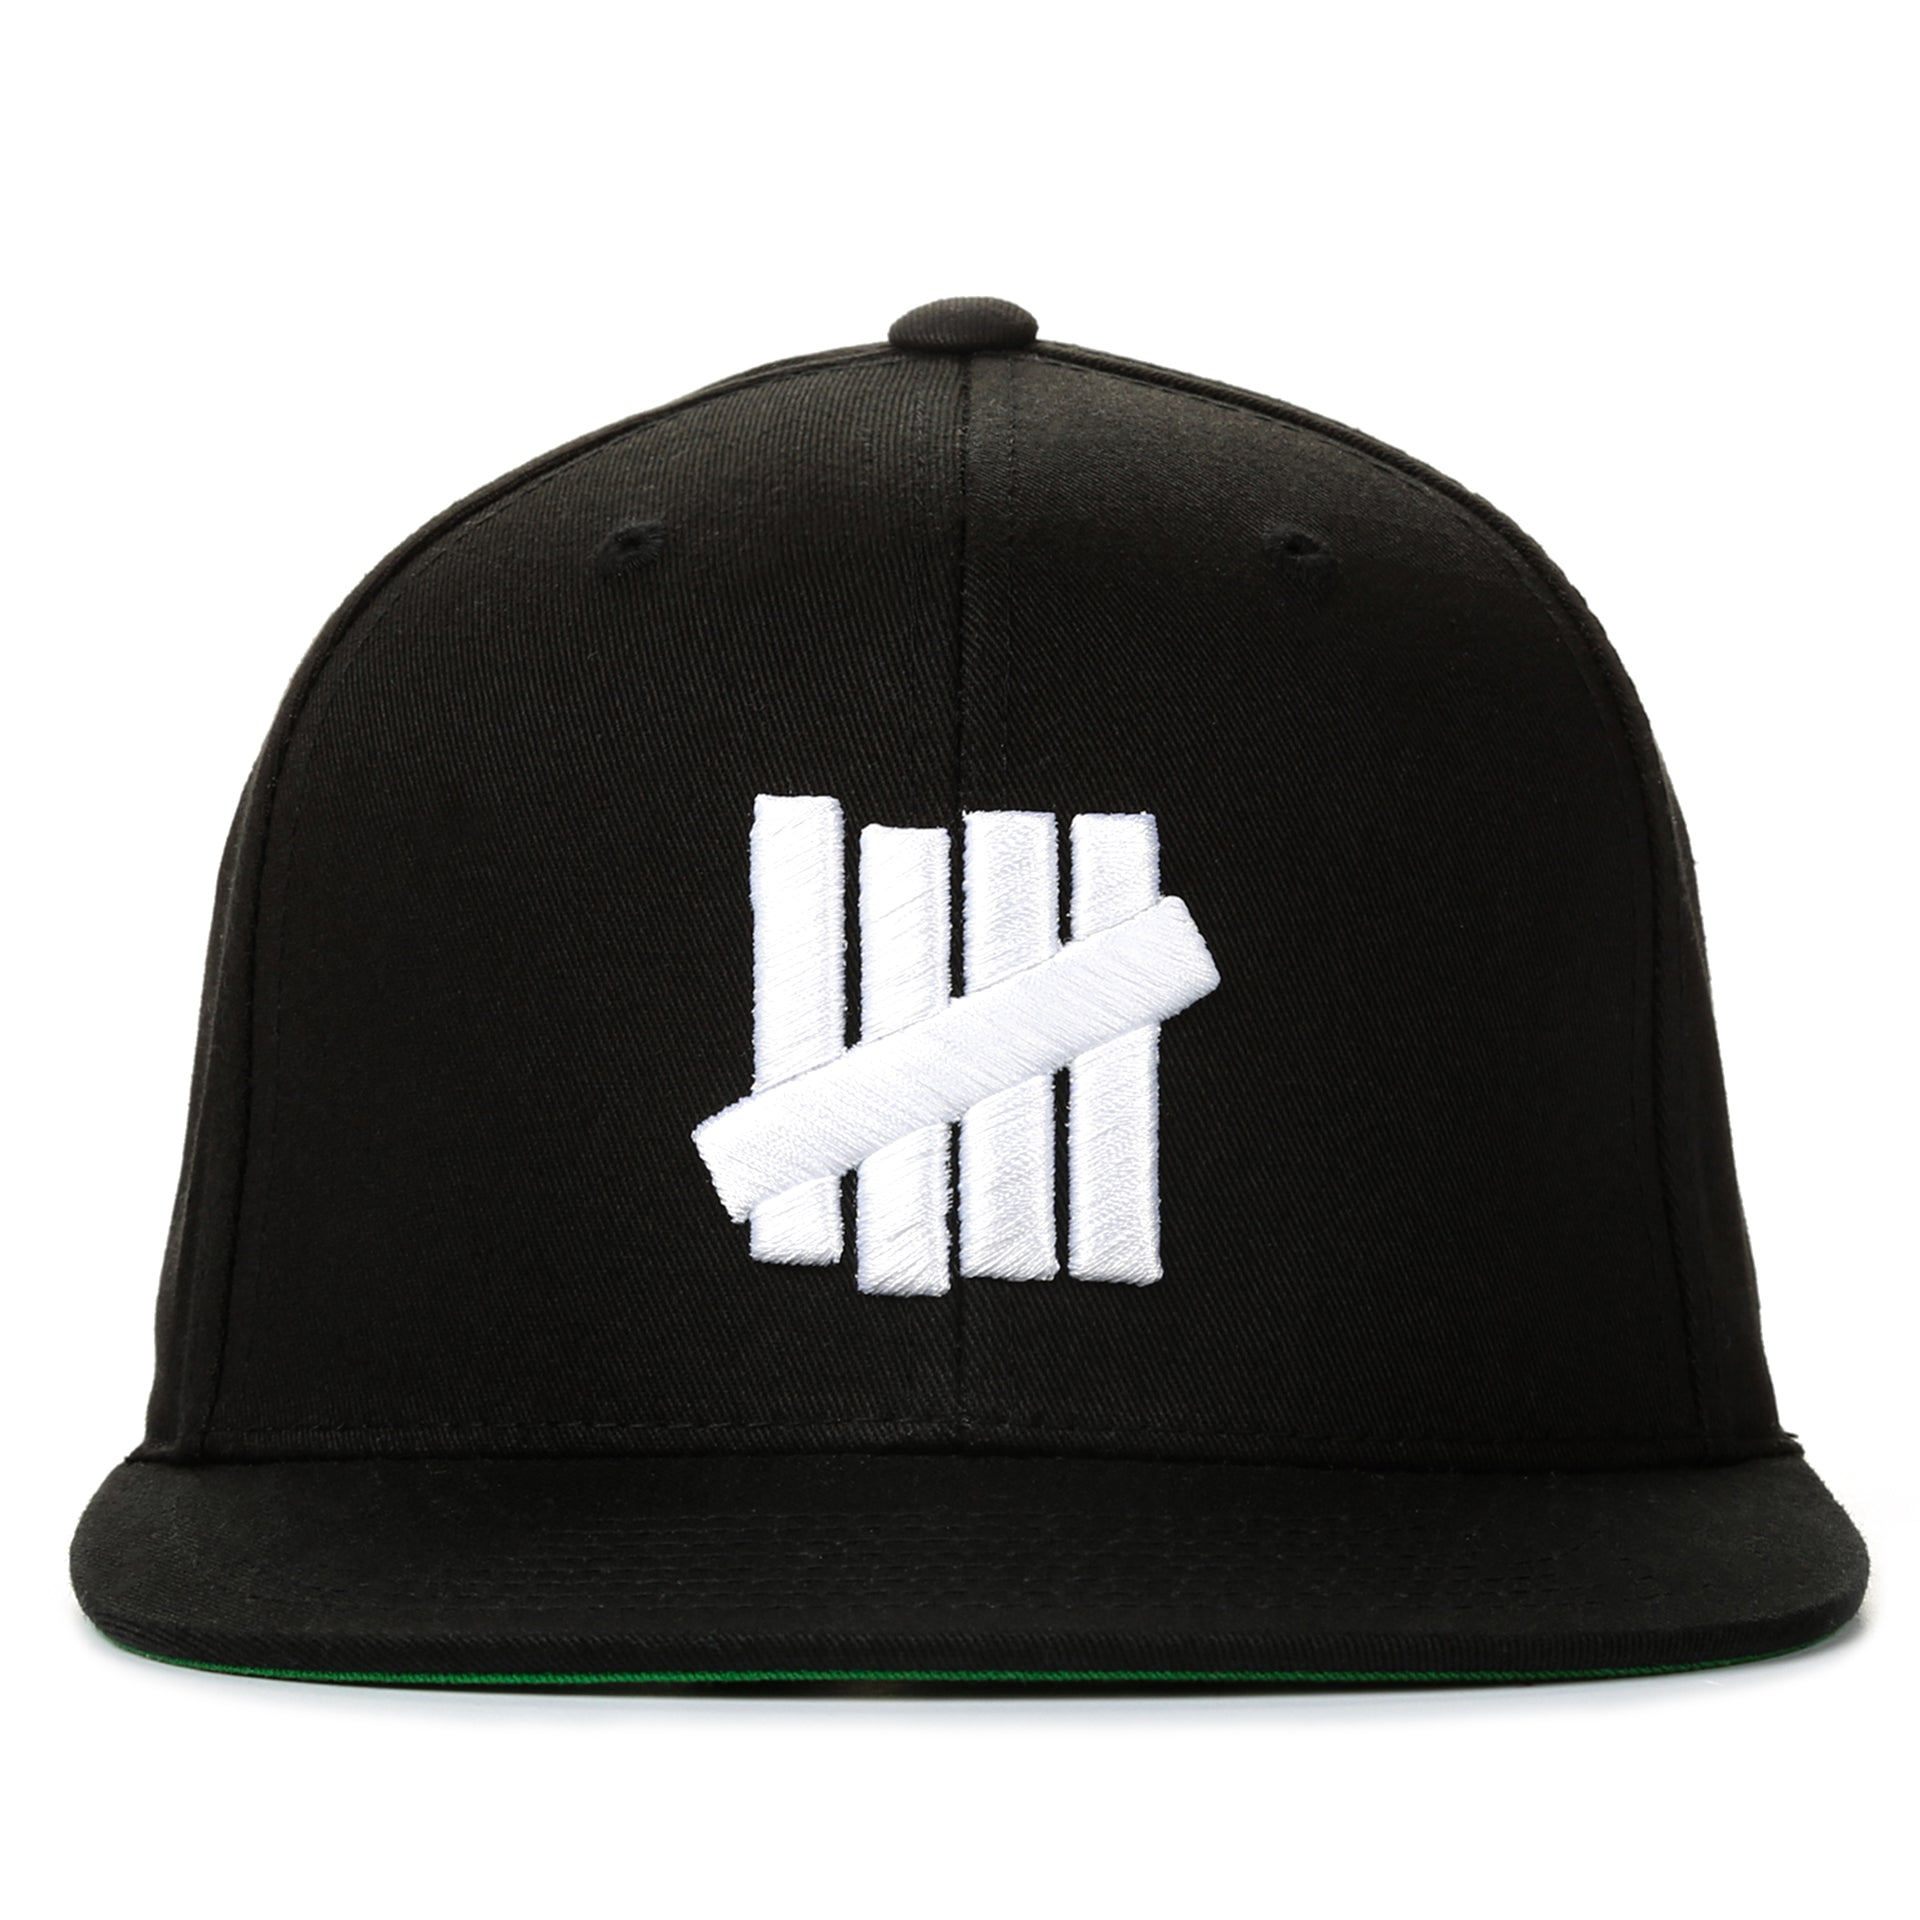 55570dd5fe097 Undefeated 5 Strike Snapback - Black - New Star